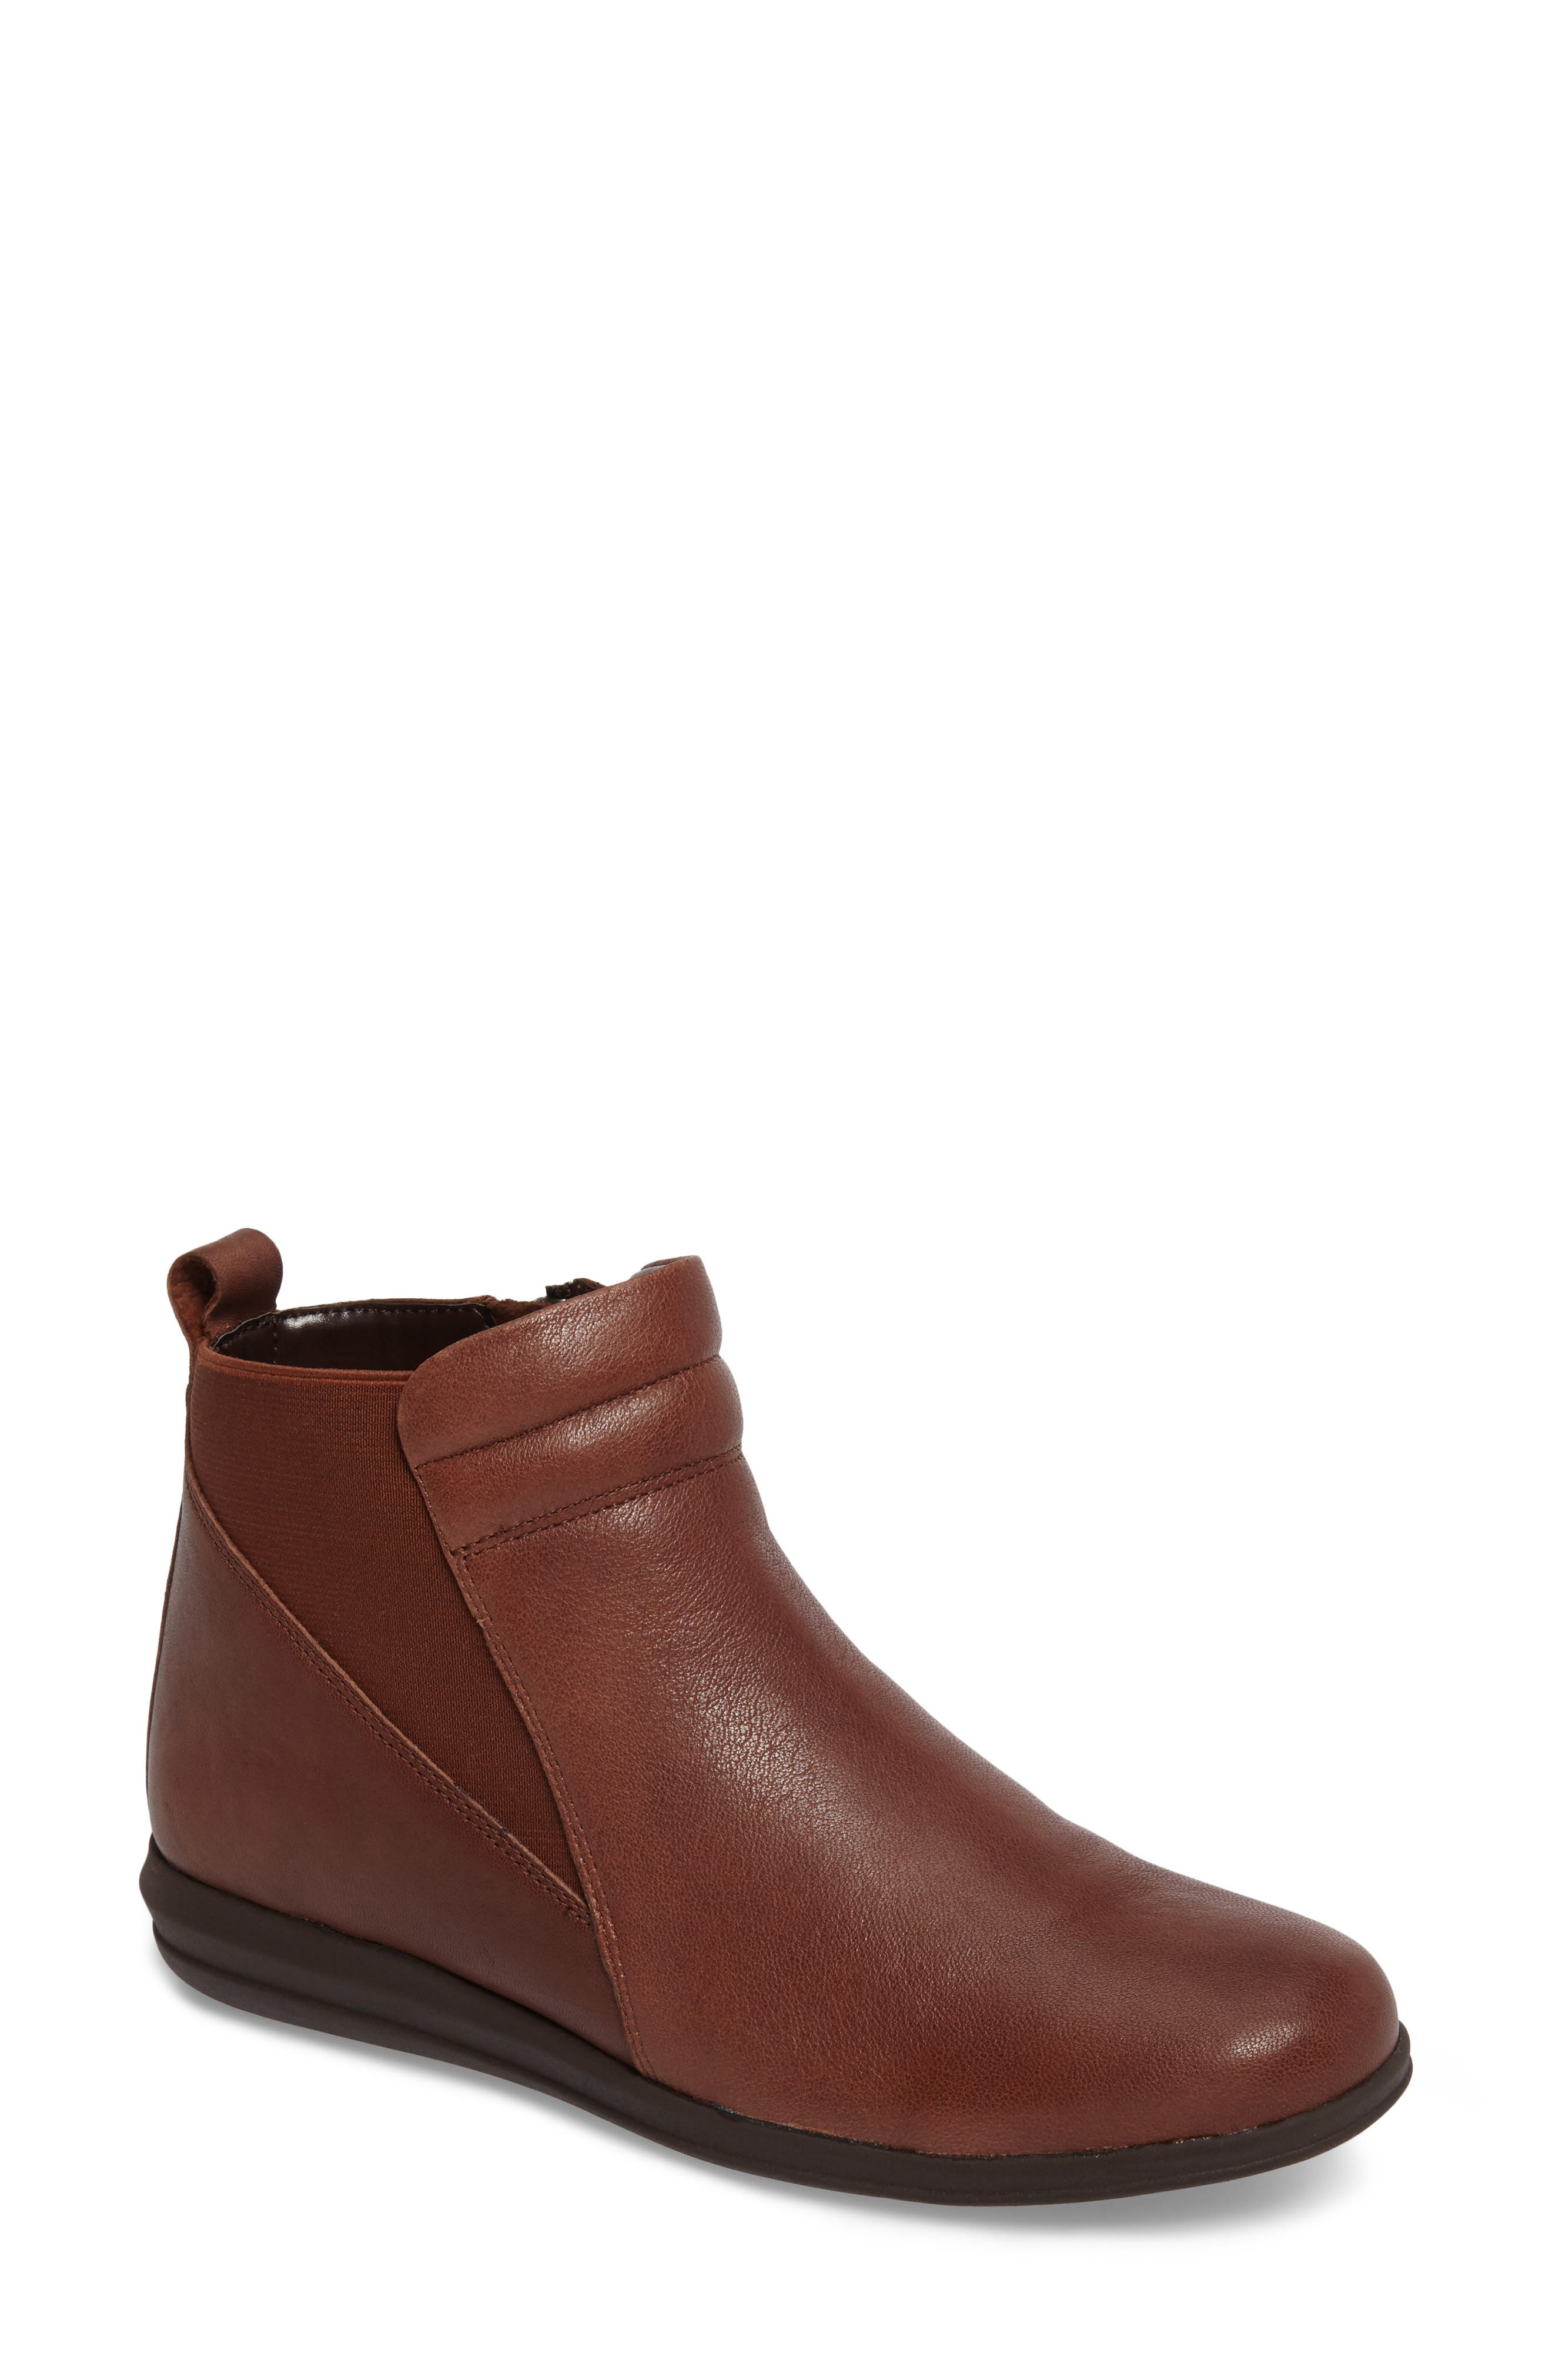 Cactus Bootie,                             Main thumbnail 1, color,                             Brown Leather